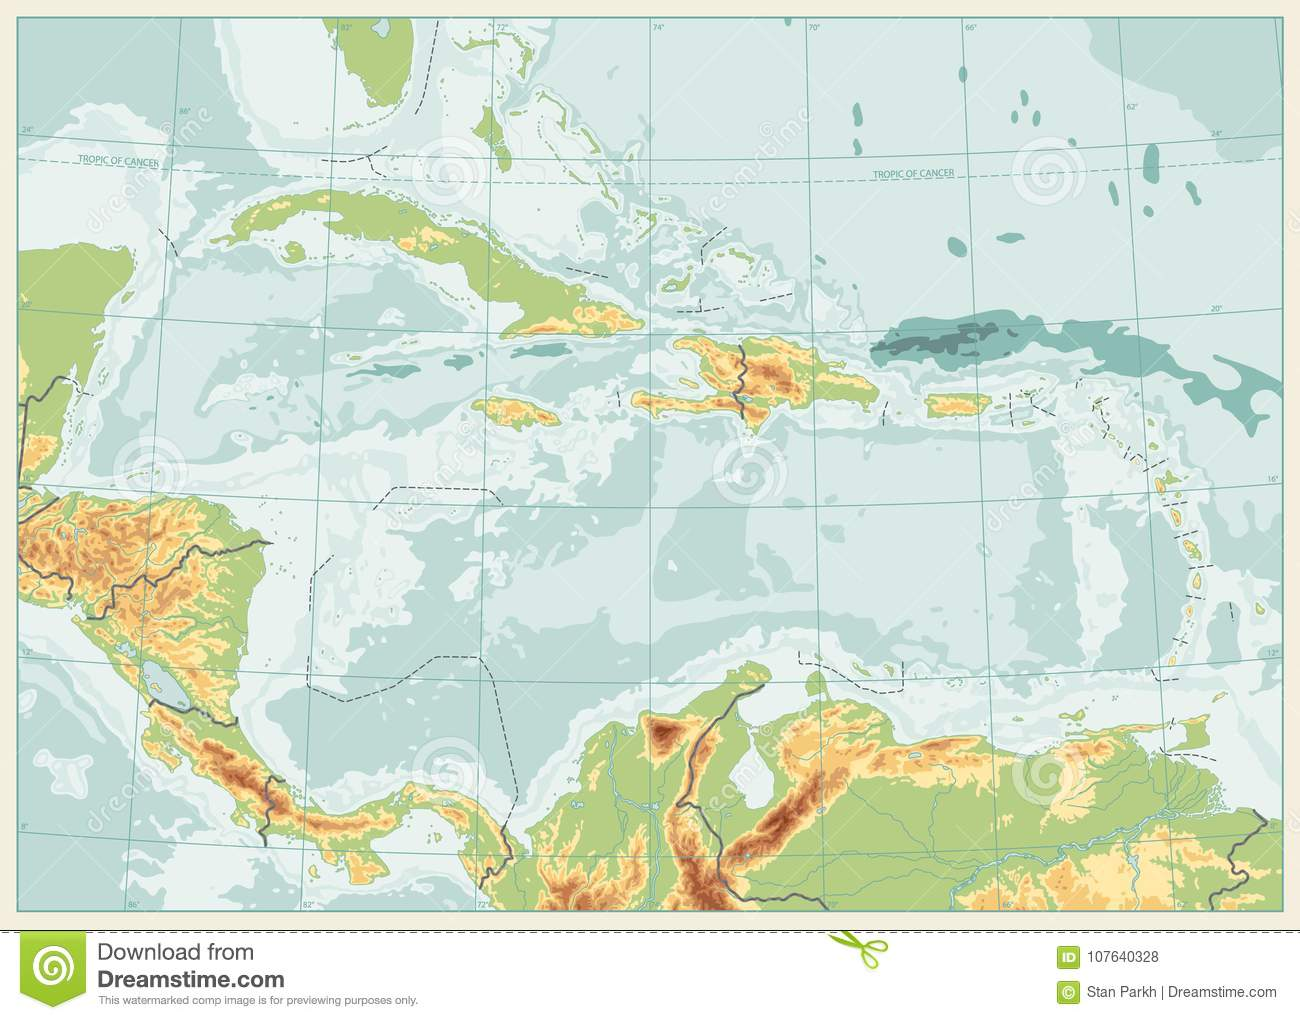 The Caribbean Physical Map. Retro Colors. No Text Stock Vector ... on map of s america and caribbean, time zone map of caribbean, satellite map of caribbean, large map of the caribbean, political map of caribbean, world map caribbean, map of middle america and caribbean, geography of caribbean, color map of caribbean, elevation of caribbean, full map of caribbean, topographic map of caribbean, educational map of caribbean, outline map of caribbean, relief map of caribbean, blank map of caribbean, culture of caribbean, population density map of caribbean, map of of caribbean, physical features of caribbean islands,